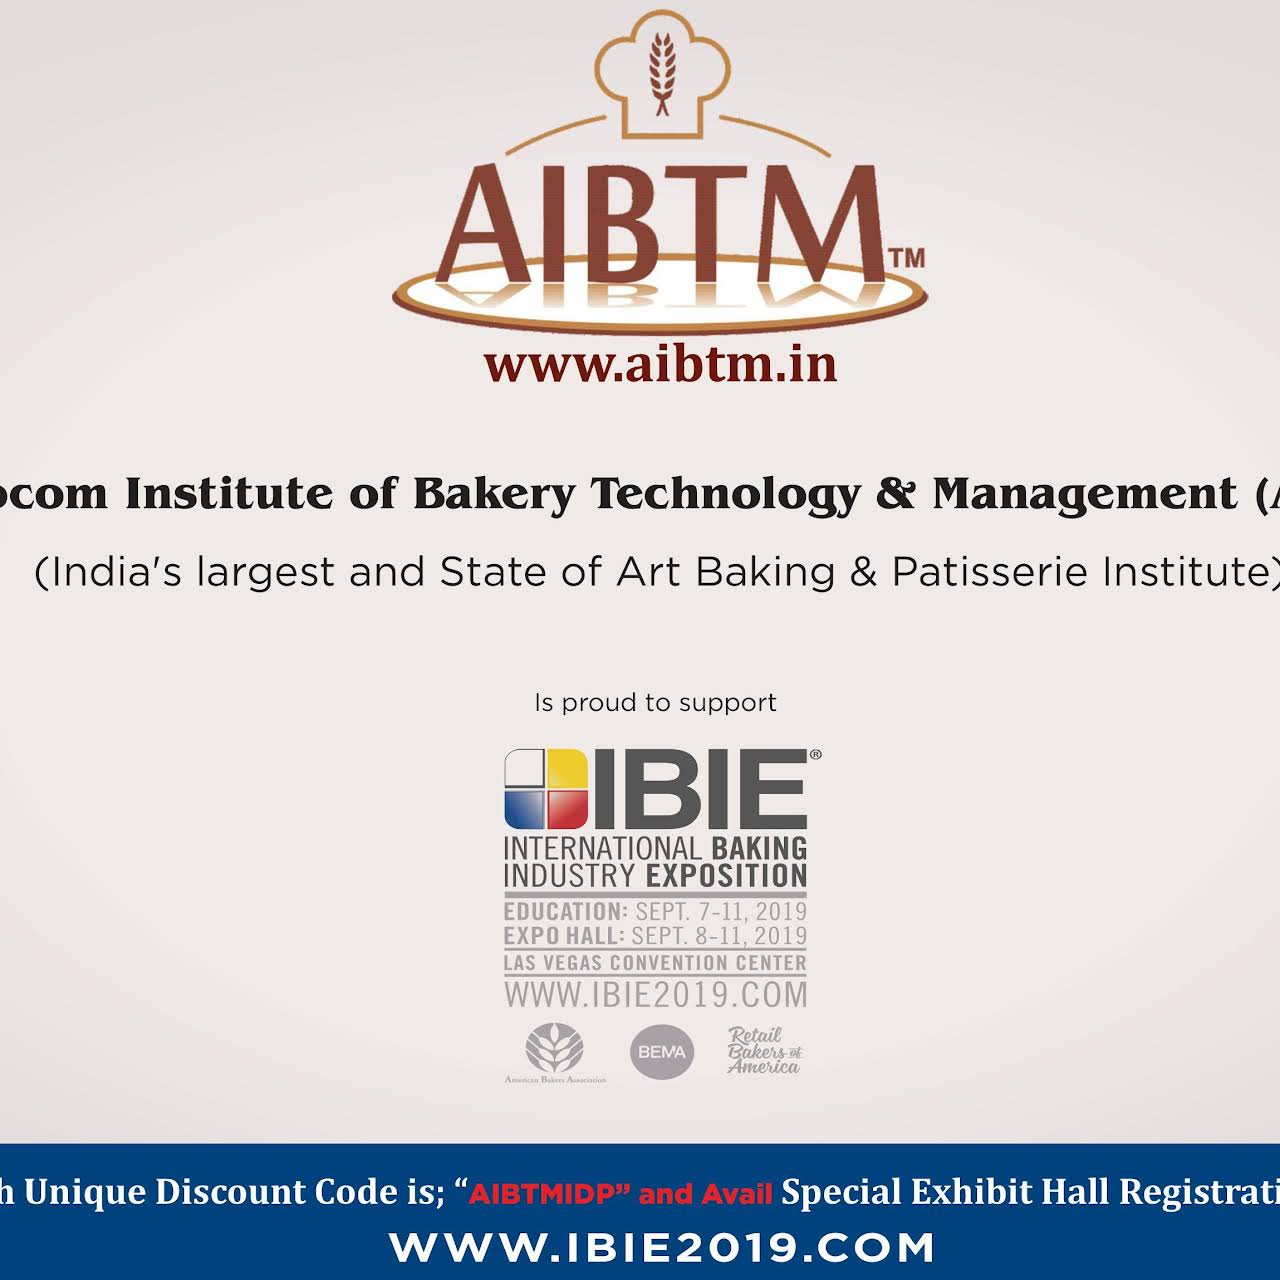 Assocom Institute of Bakery Technology and Management (AIBTM